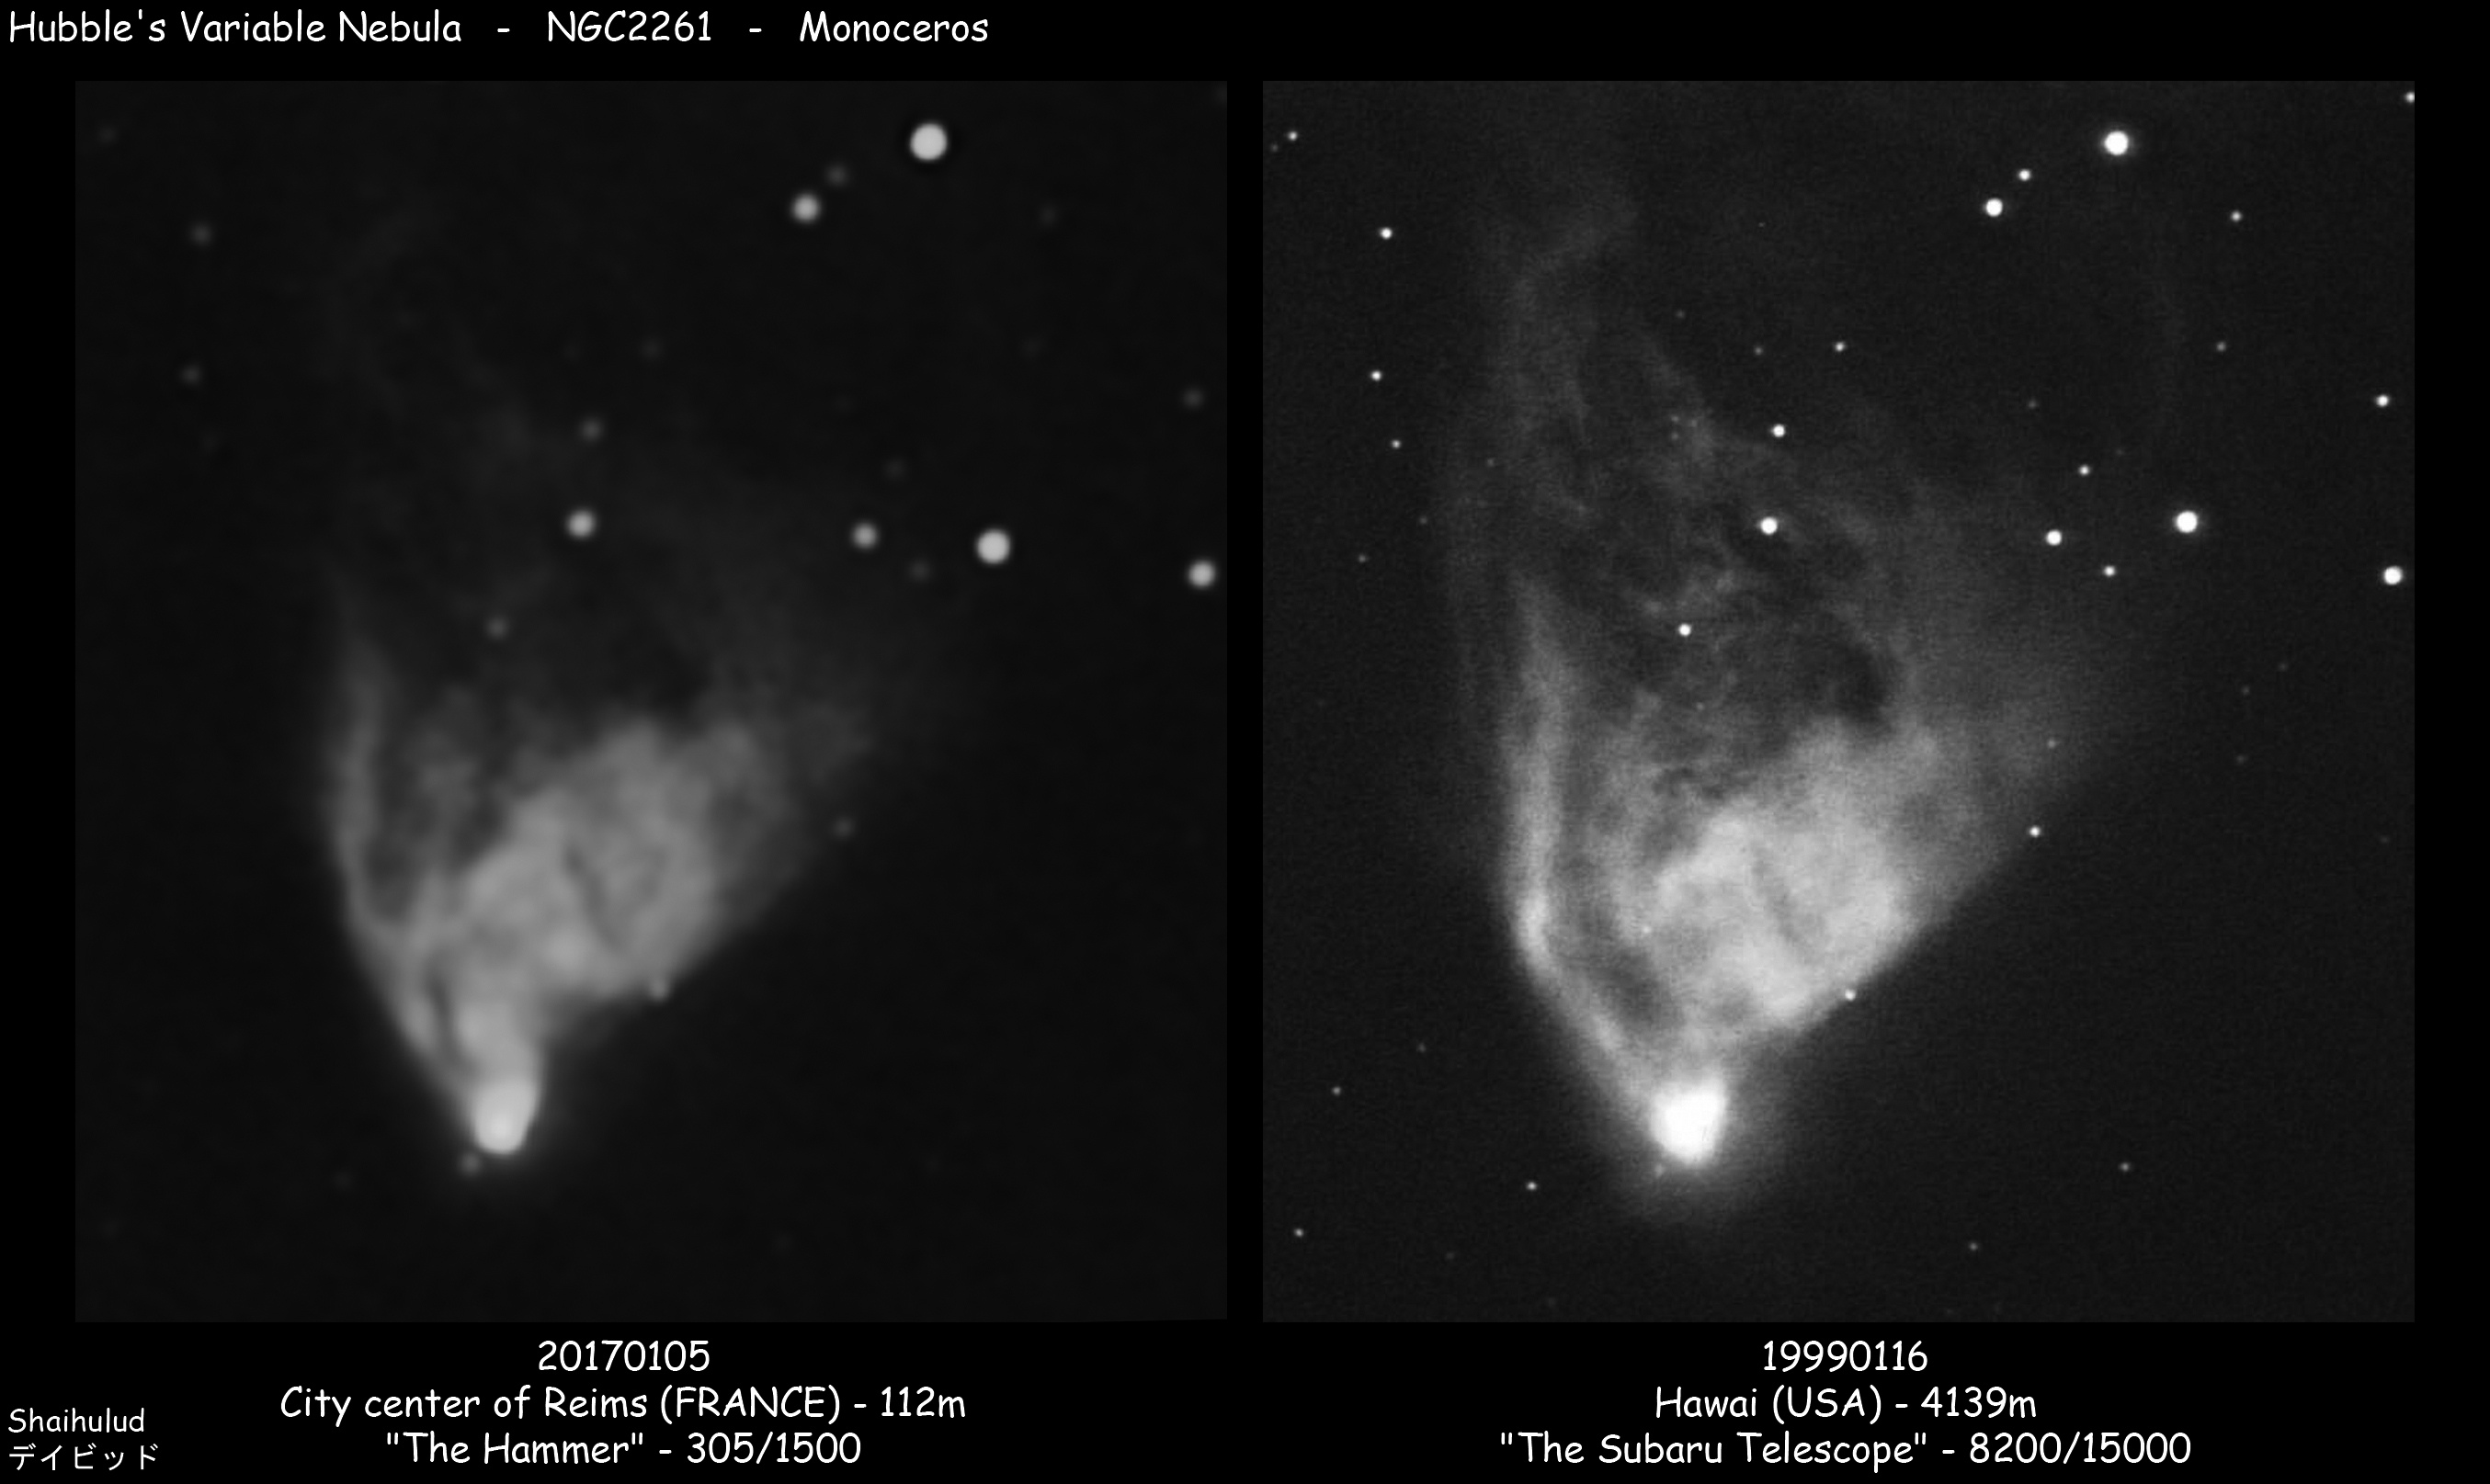 Hubble's Variable Nebula - NGC2261 (Shot from the city center of Reims)